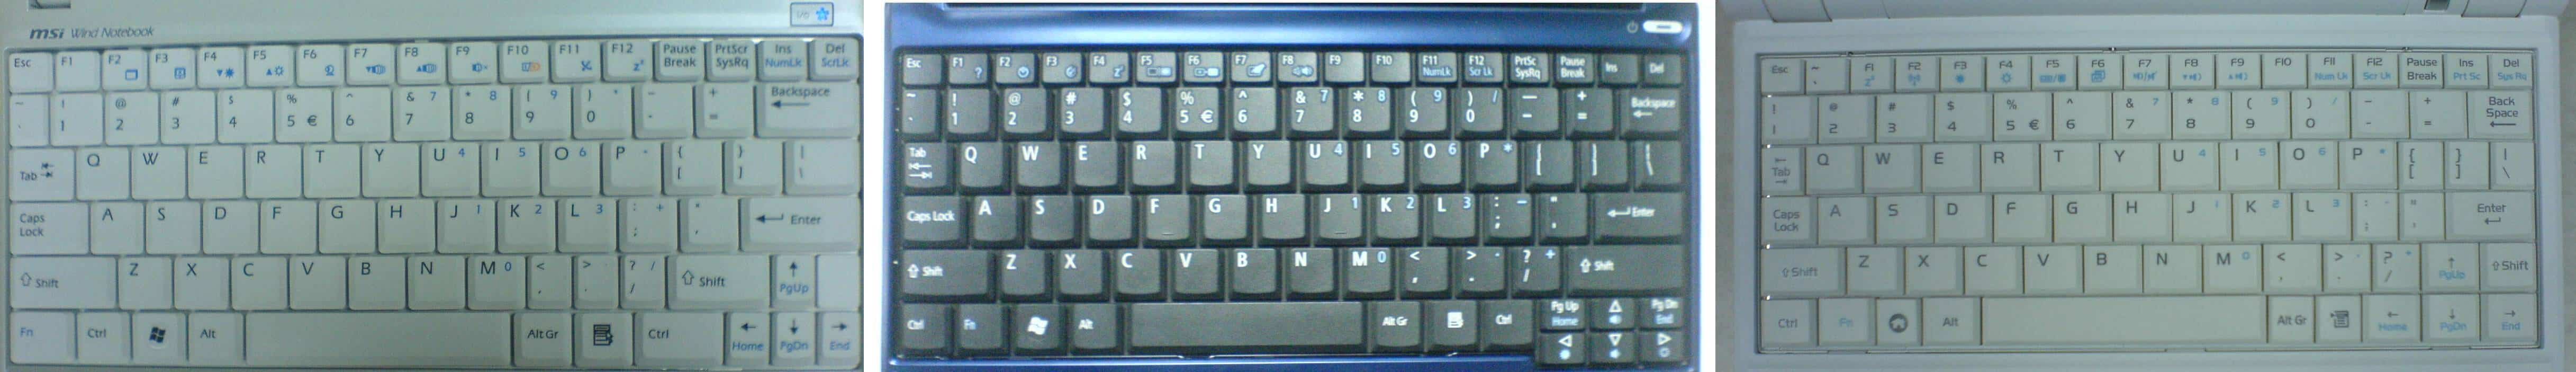 Acer Aspire One MSI Wind U100 Asus Eee PC Keyboards